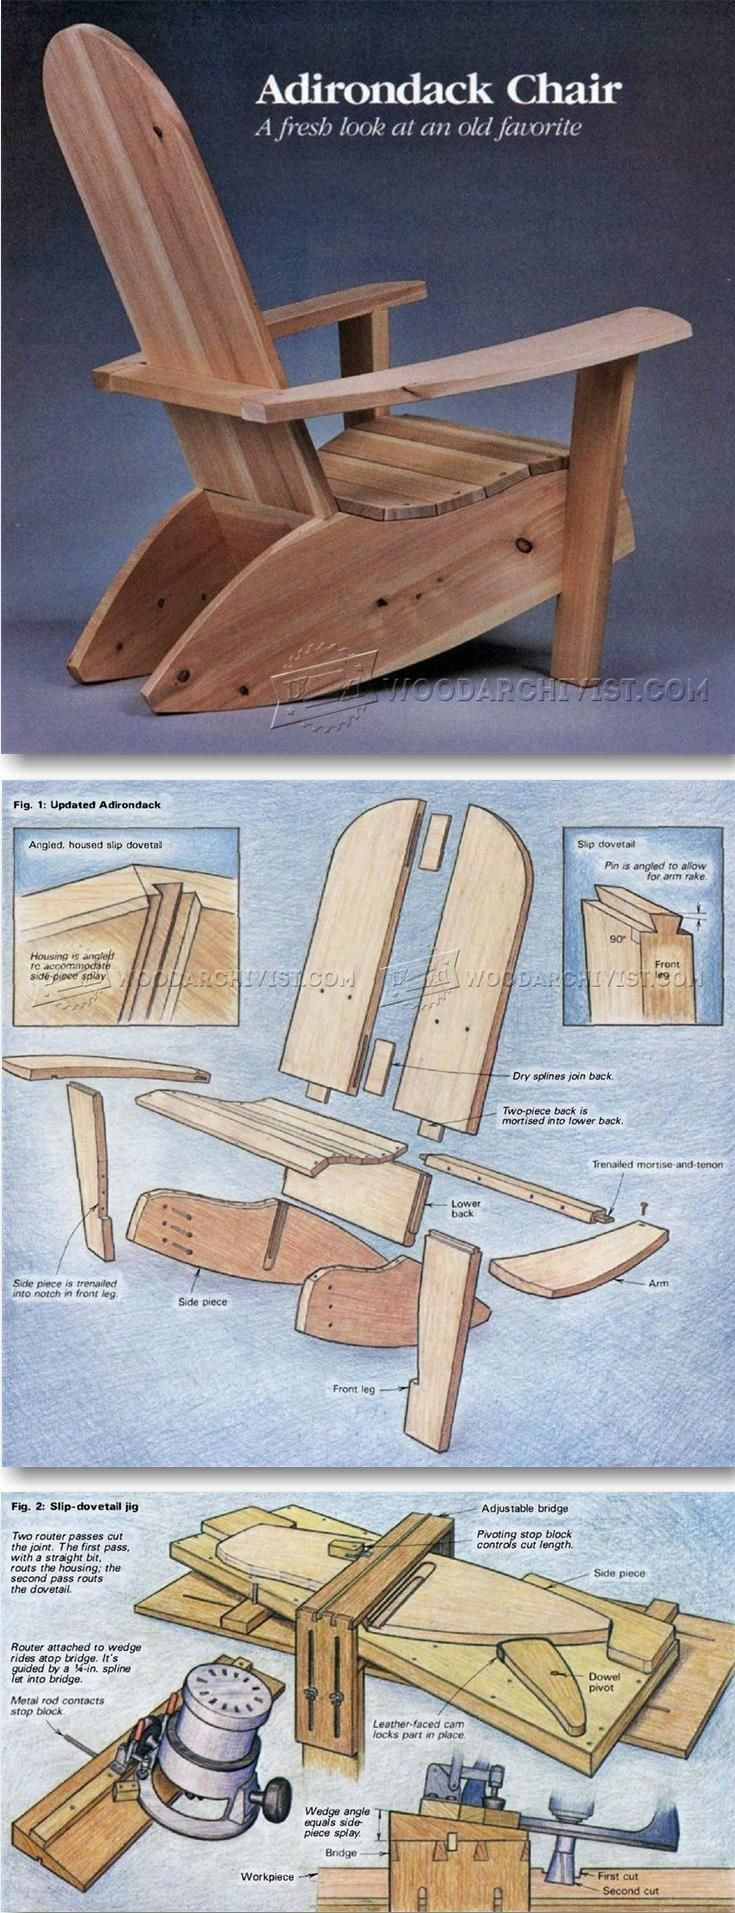 build adirondack chairs outdoor furniture plans projects wood projects. Black Bedroom Furniture Sets. Home Design Ideas